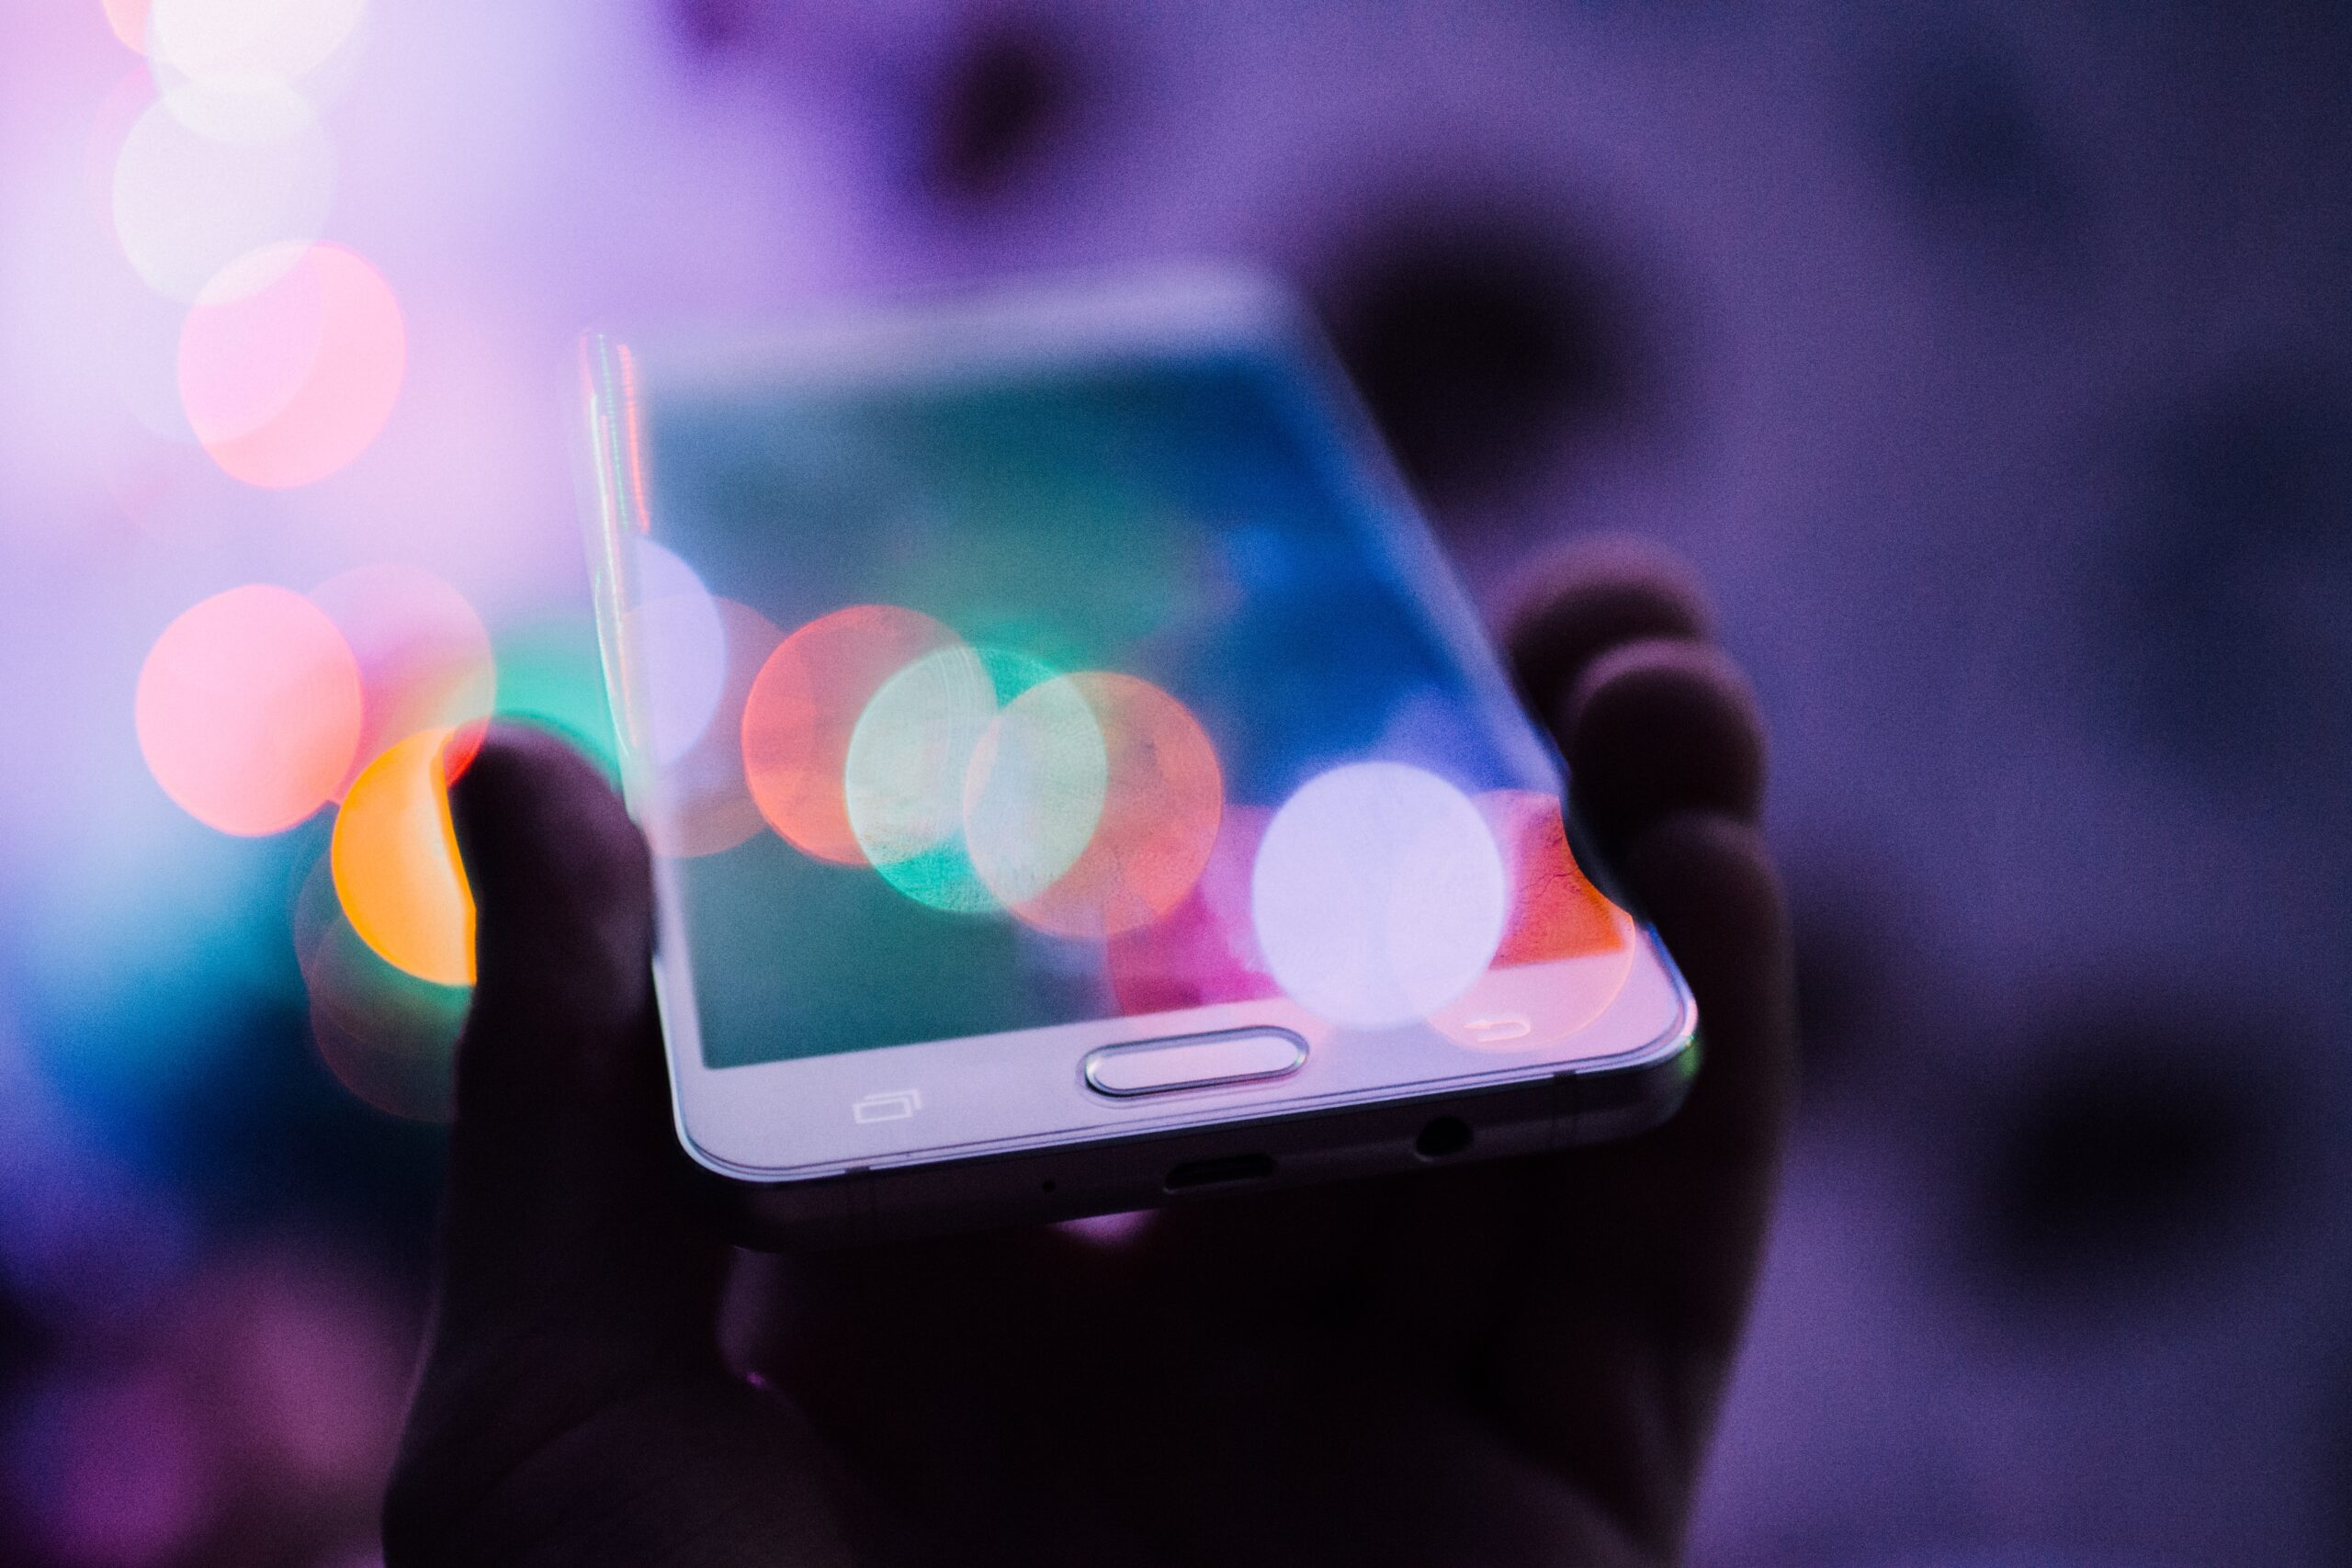 A silhouetted hand holding a mobile smart phone with colorful abstract lights surrounding it